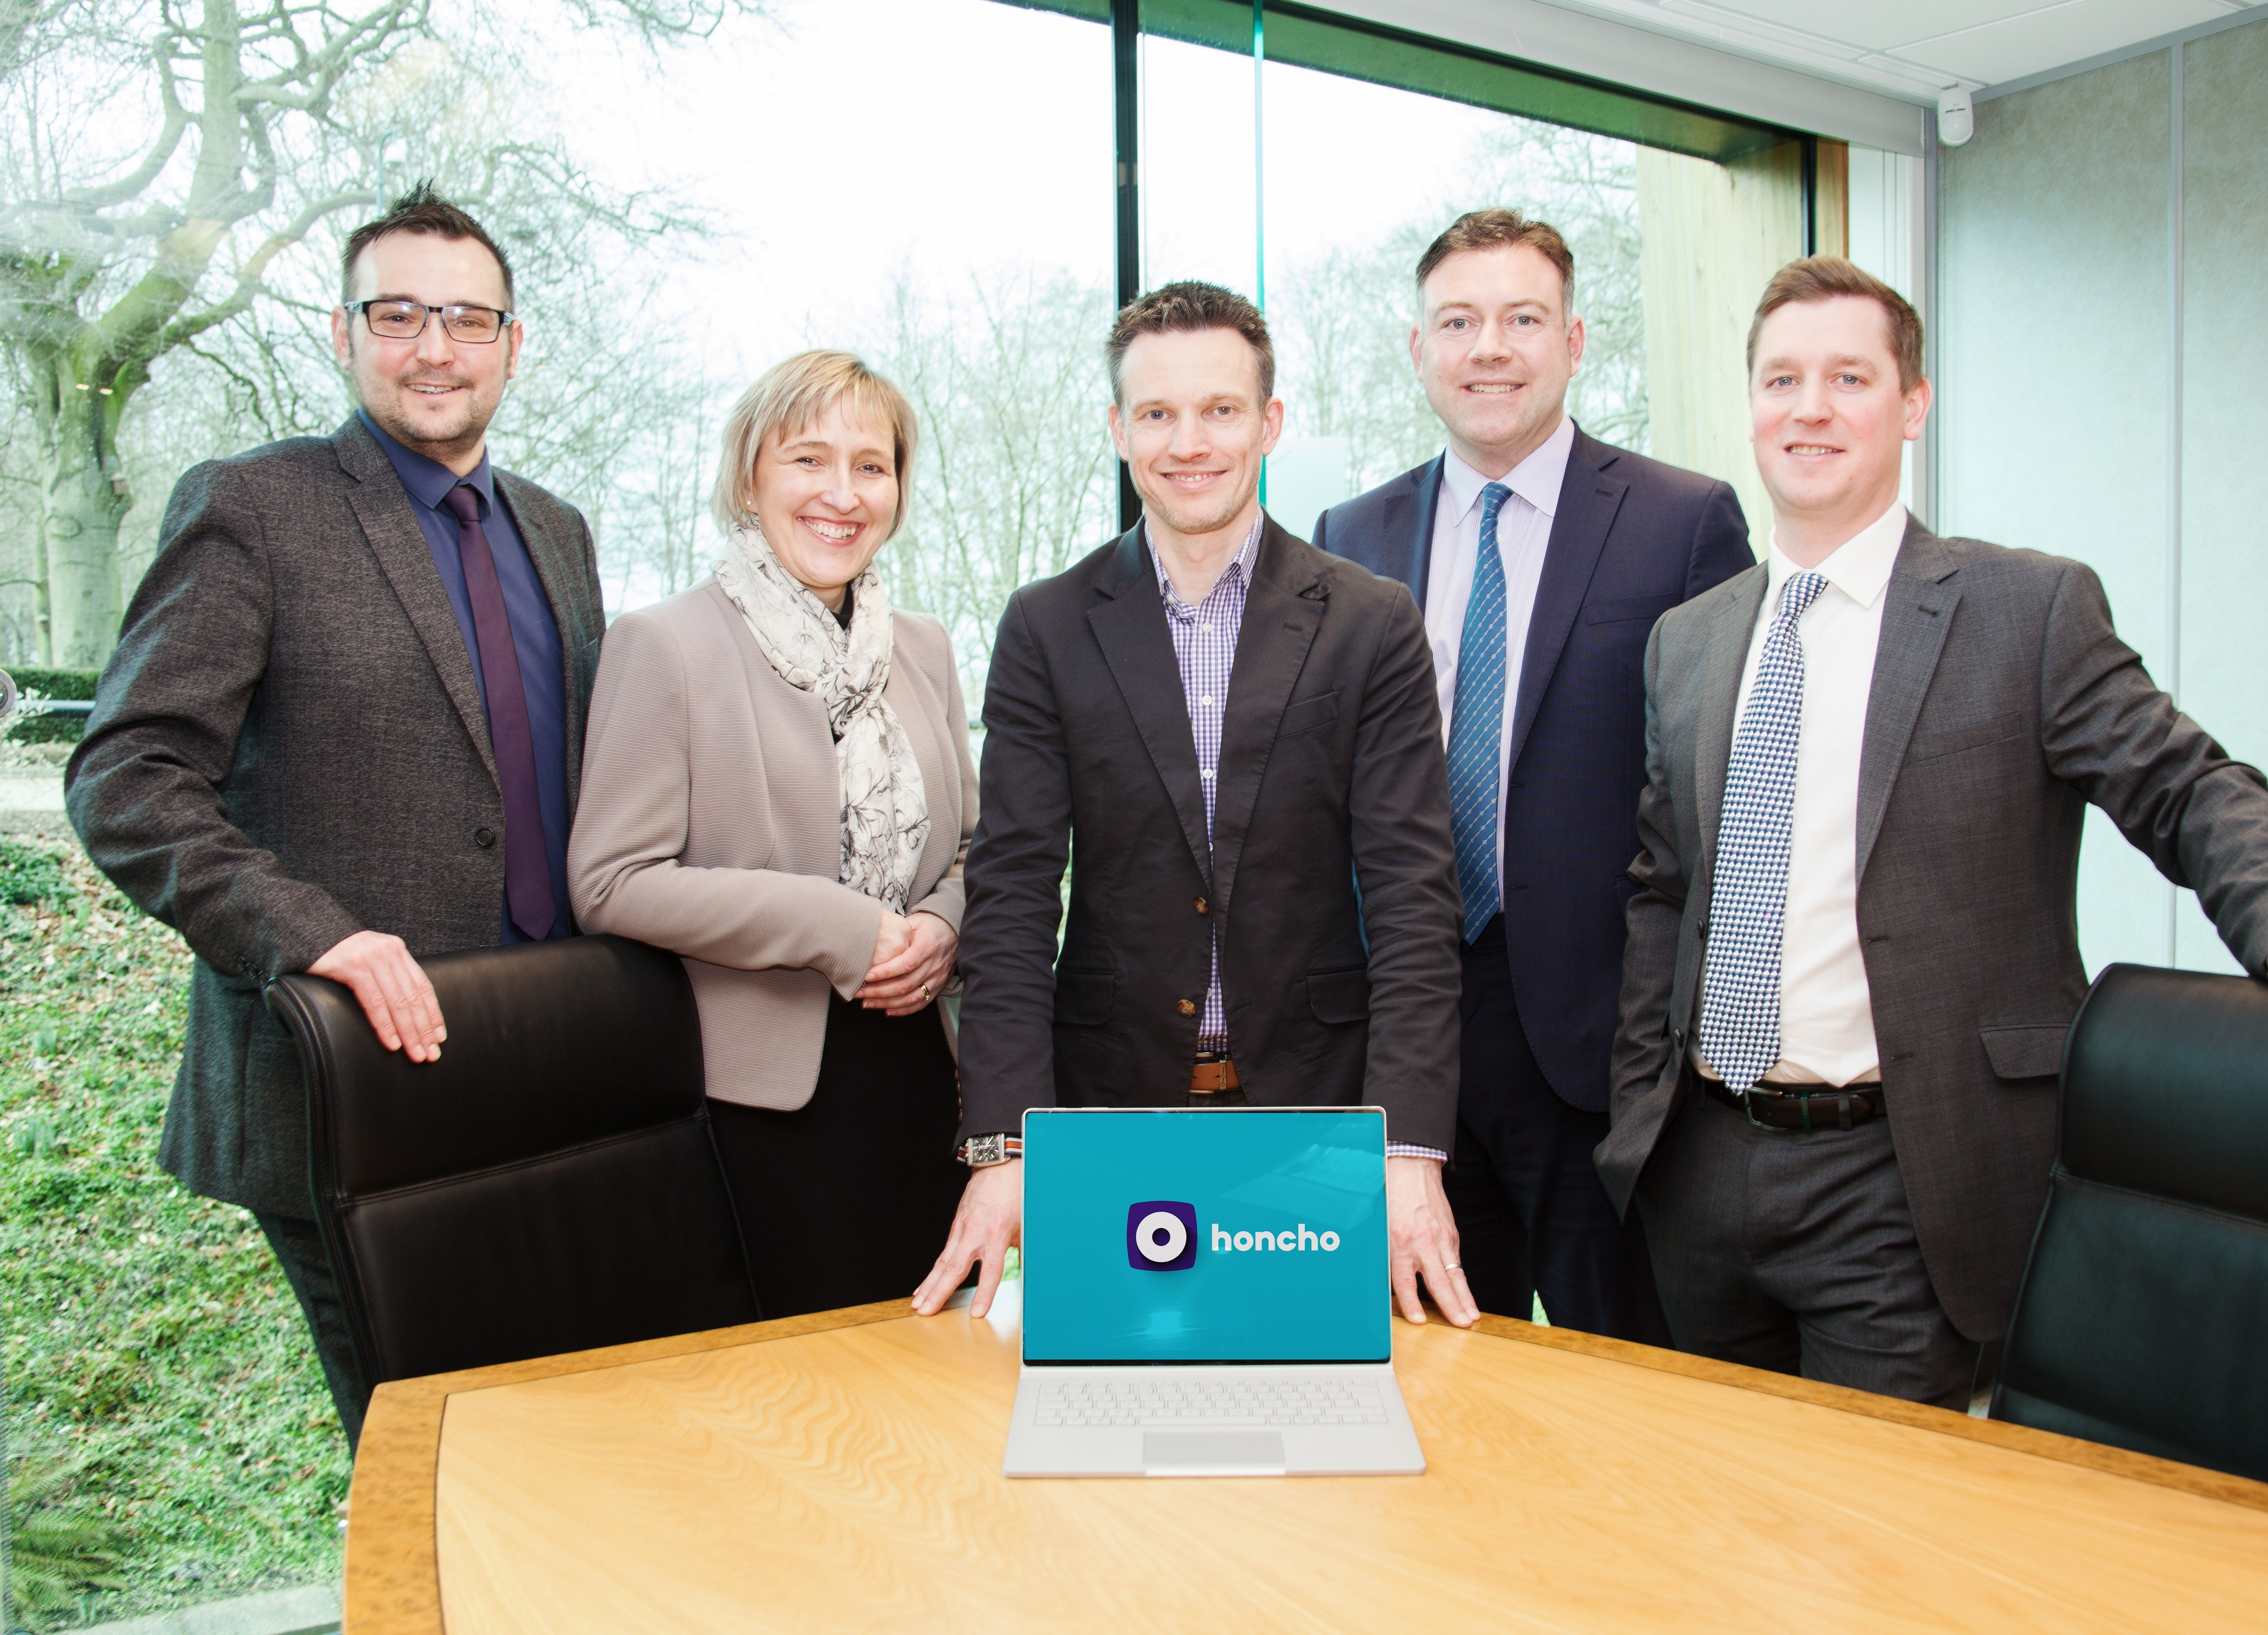 Maven funds invest a further £750,000 in honcho